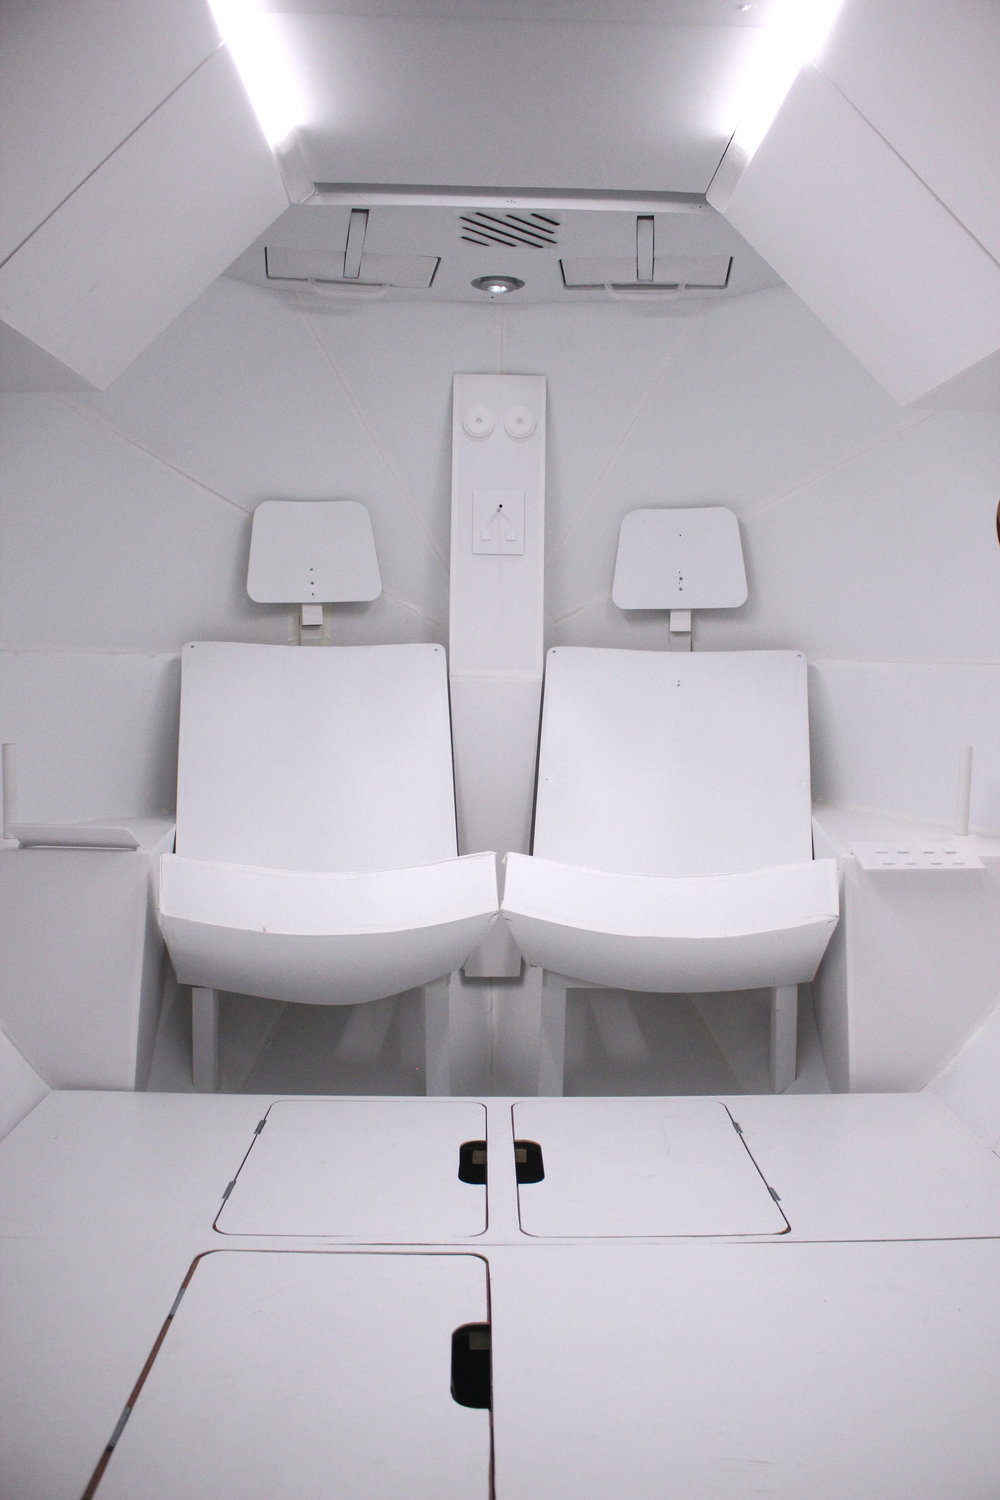 Seating arrangement for astronauts in final prototype